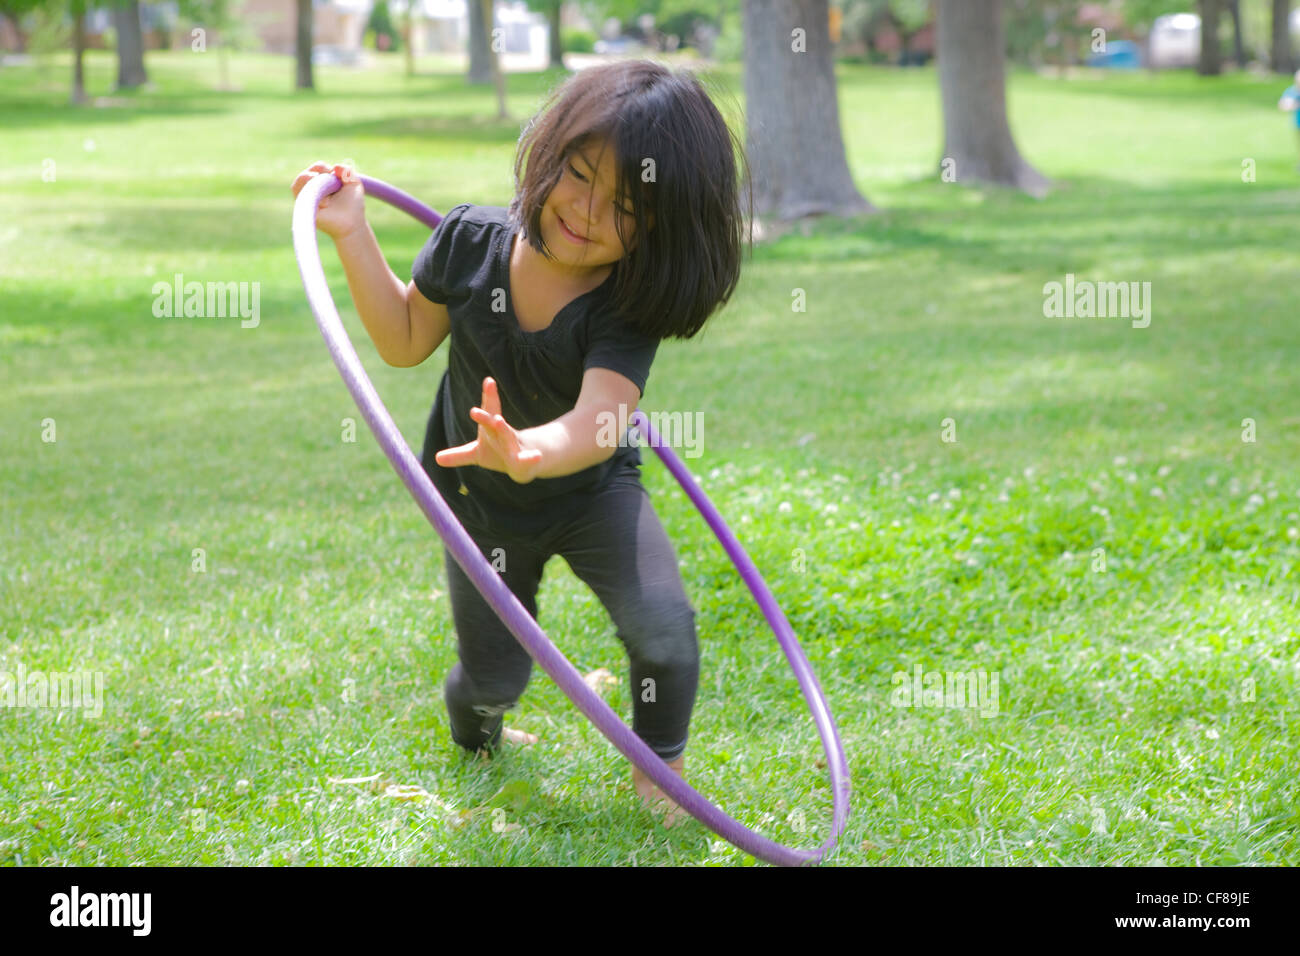 Four year old girl playing with a hoolahoop in a park. - Stock Image